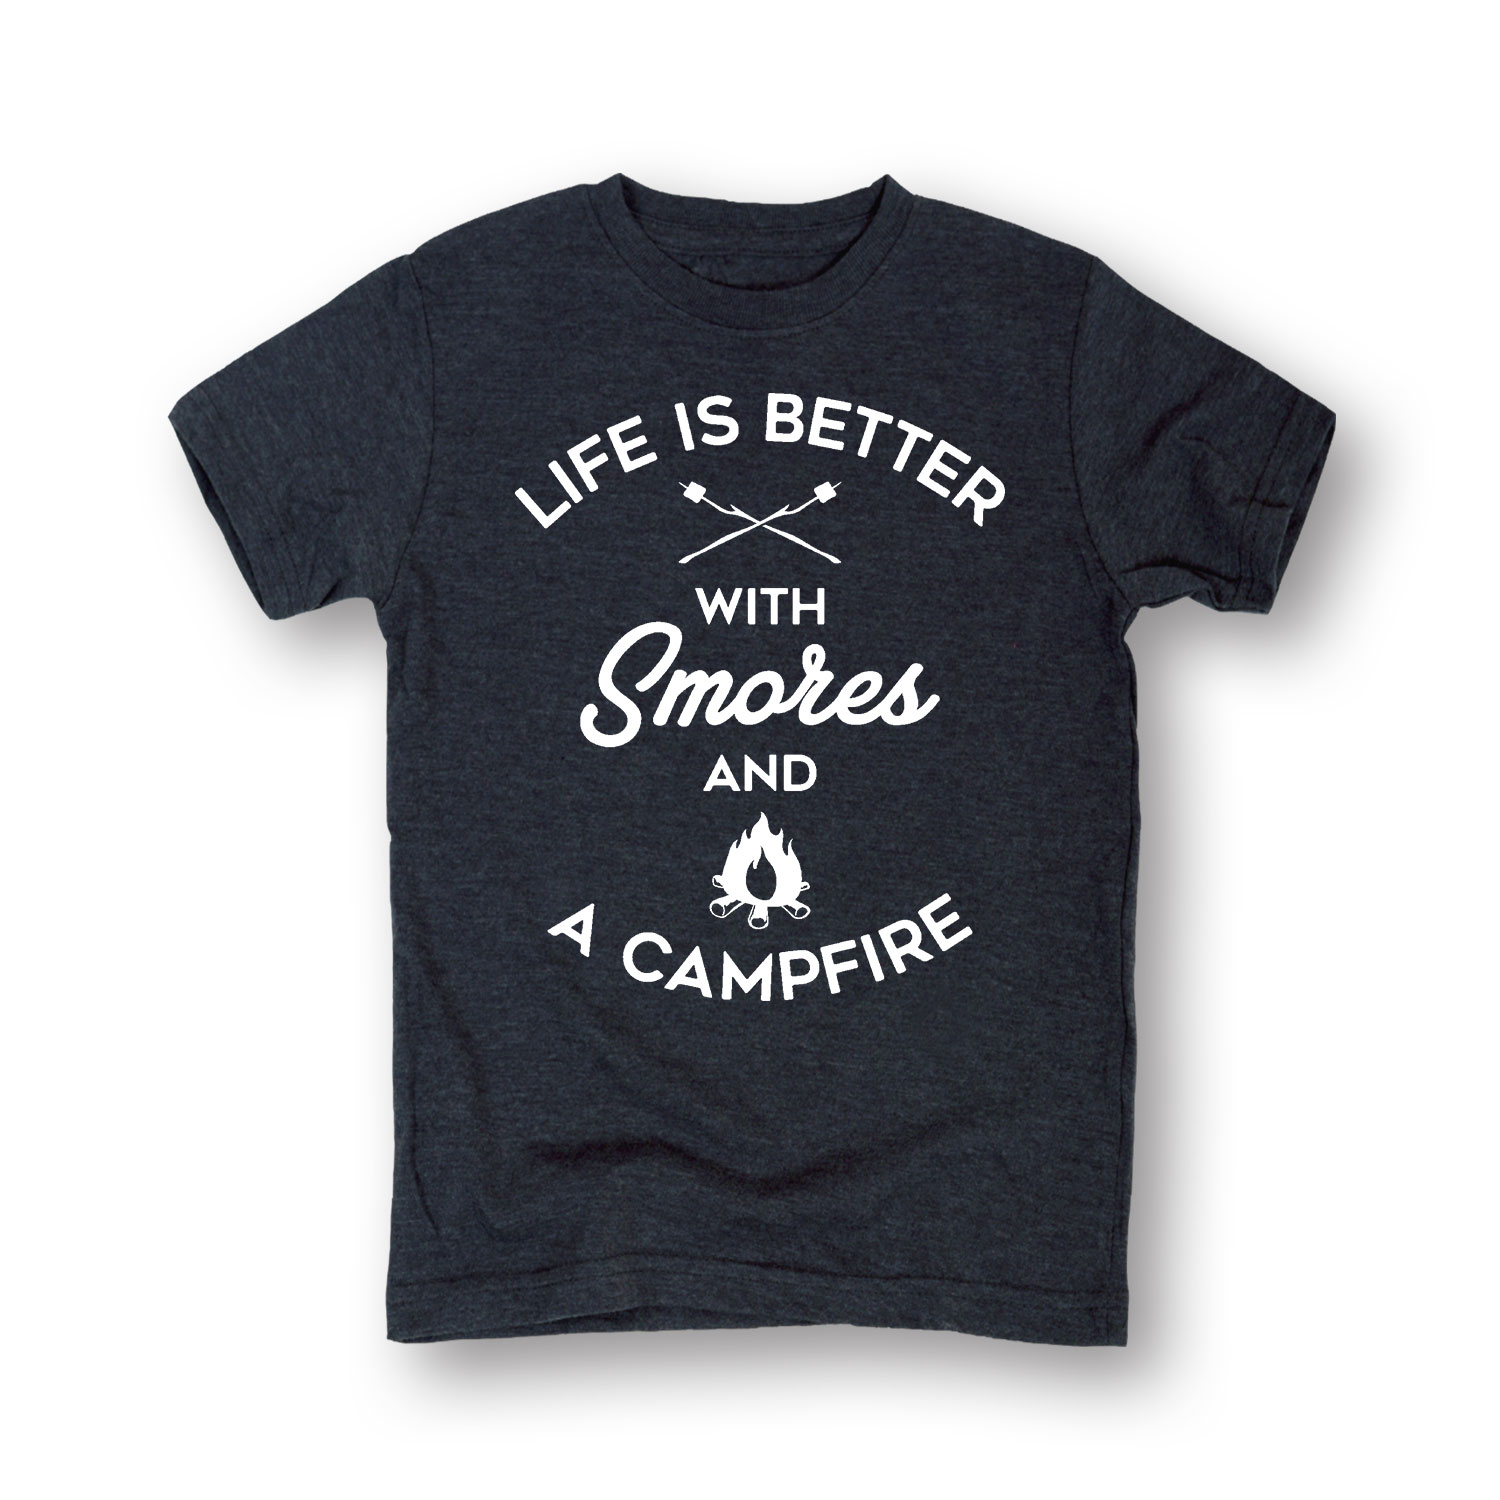 Smores And A Campfire - Toddler Short Sleeve Tee